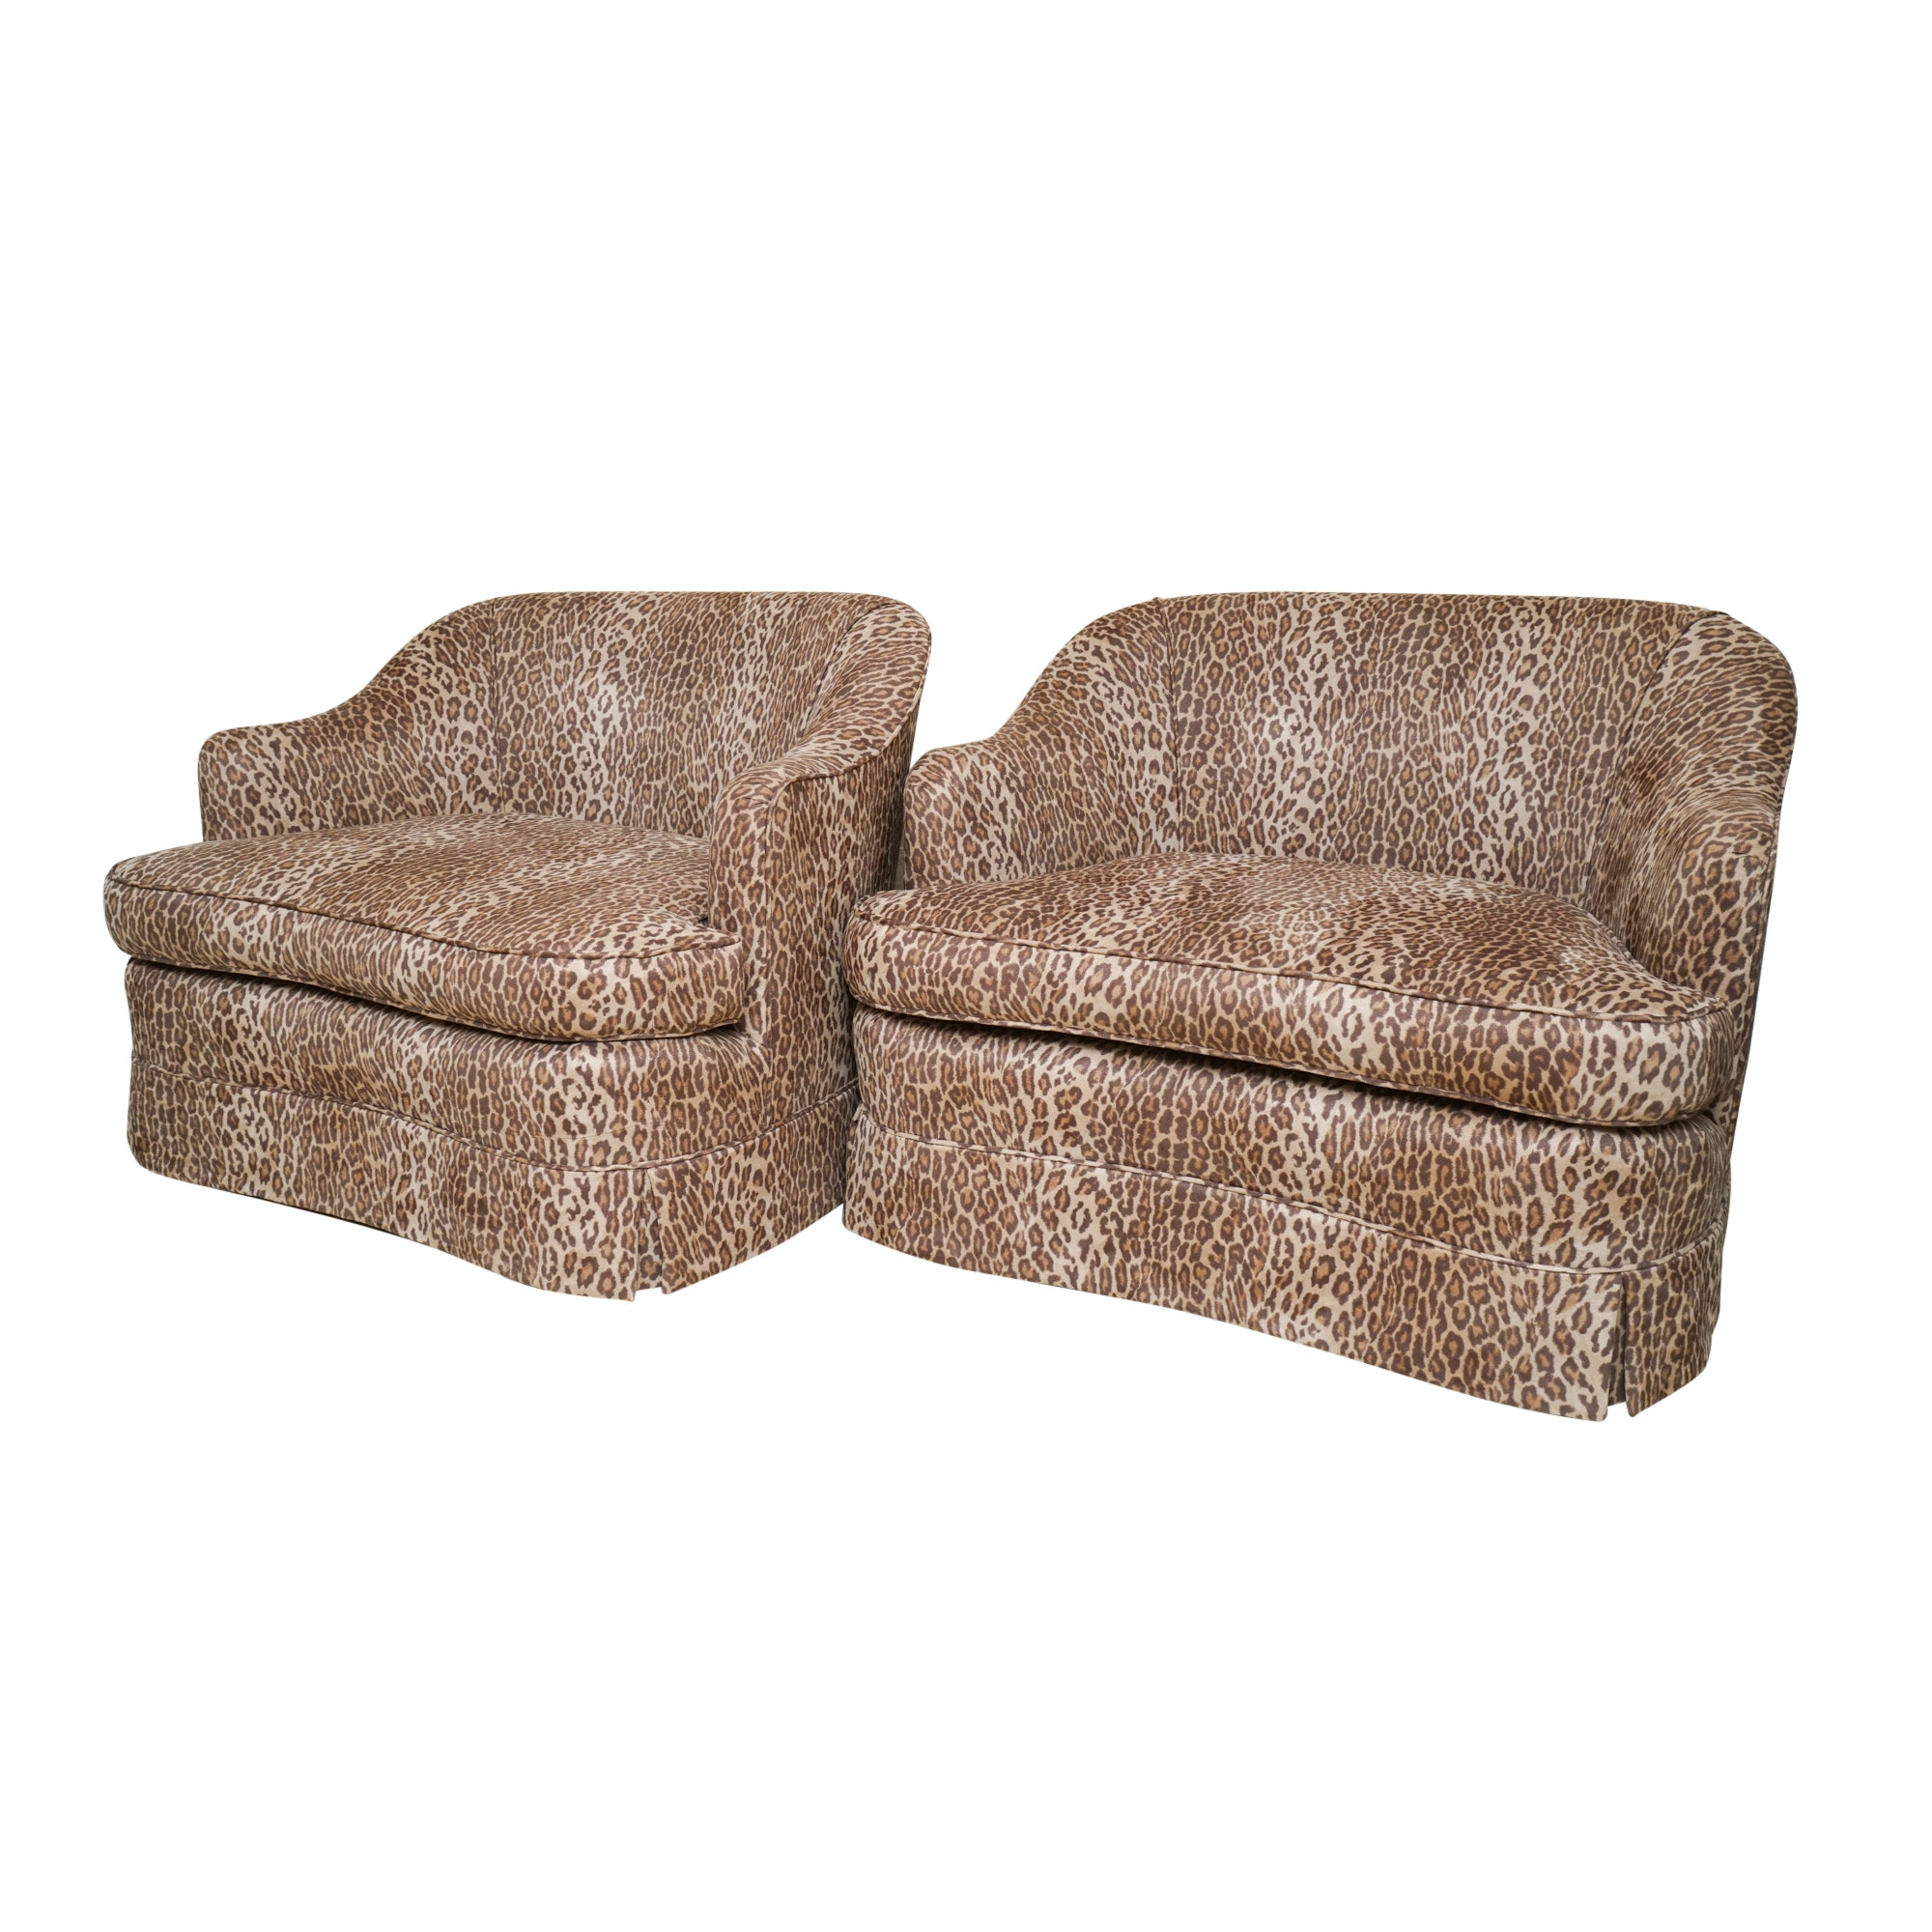 Pair of Oversize Leopard Print Tub Chairs